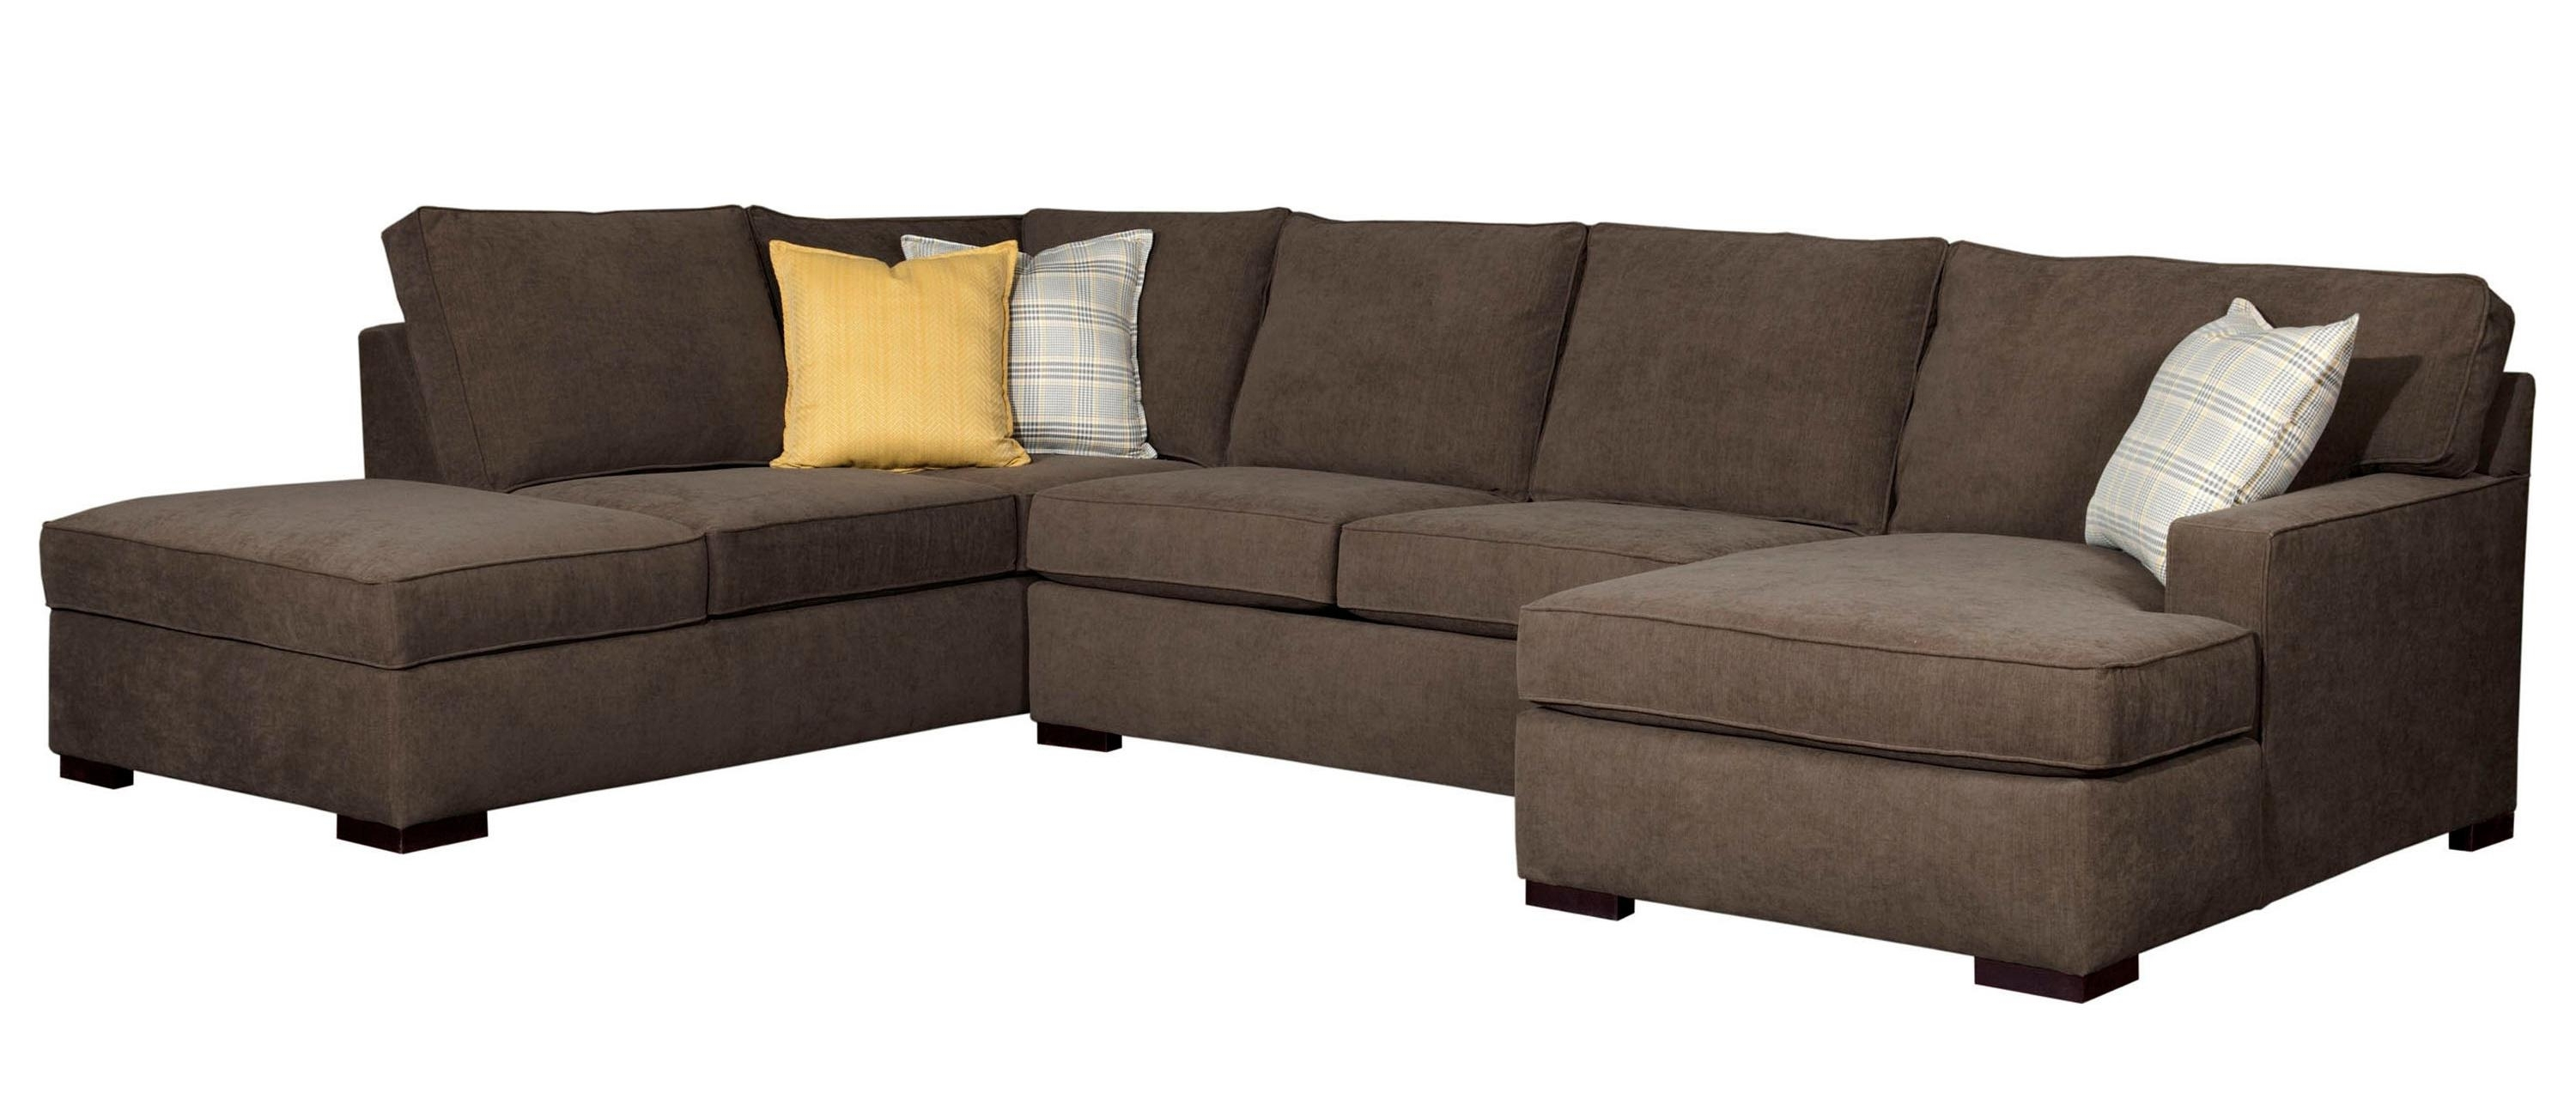 Popular Sectional Chaise Sofas Intended For Sectional Sofa Design: Sofa Sectional With Chaise Lounge Cheap (View 5 of 15)